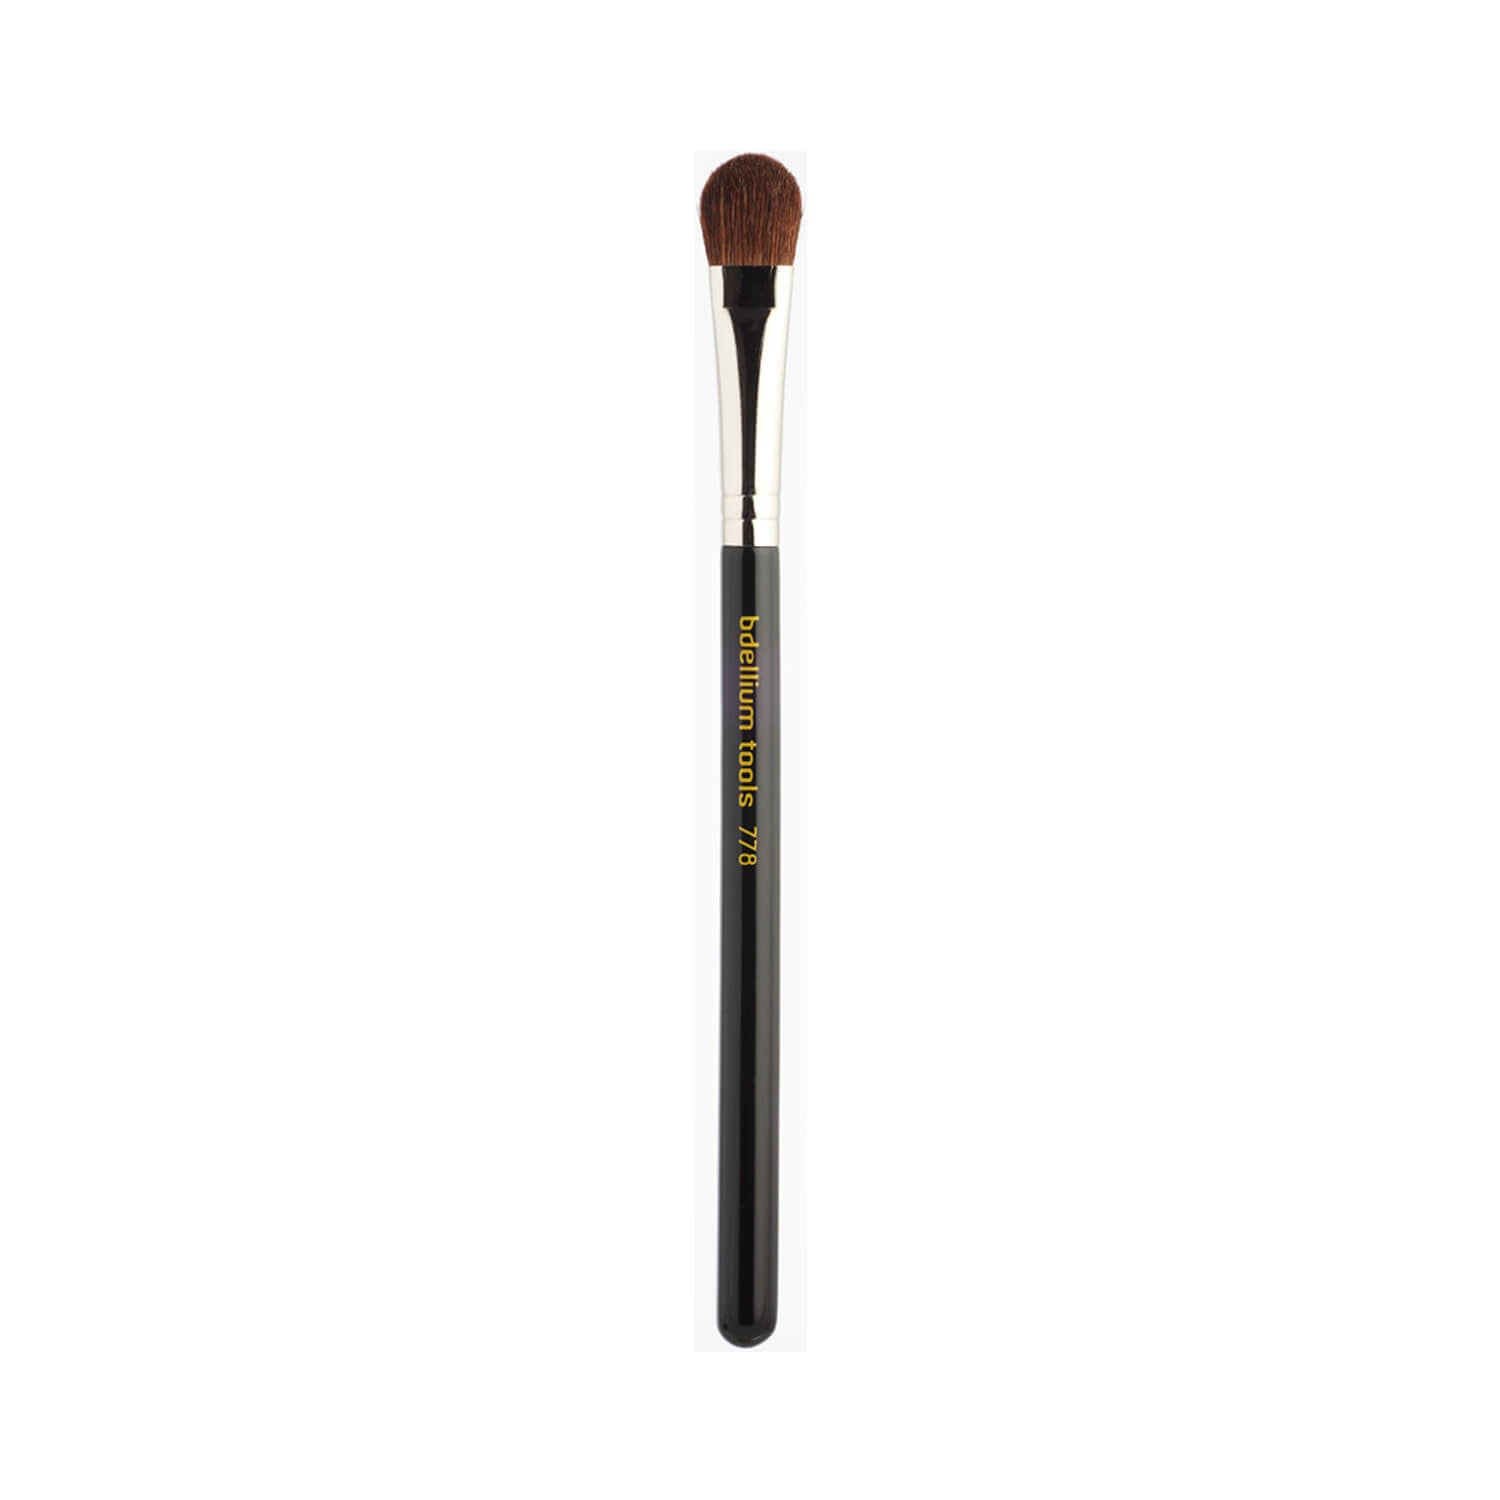 BDellium Tools Maestro Line 778 Large Shadow Brush Black